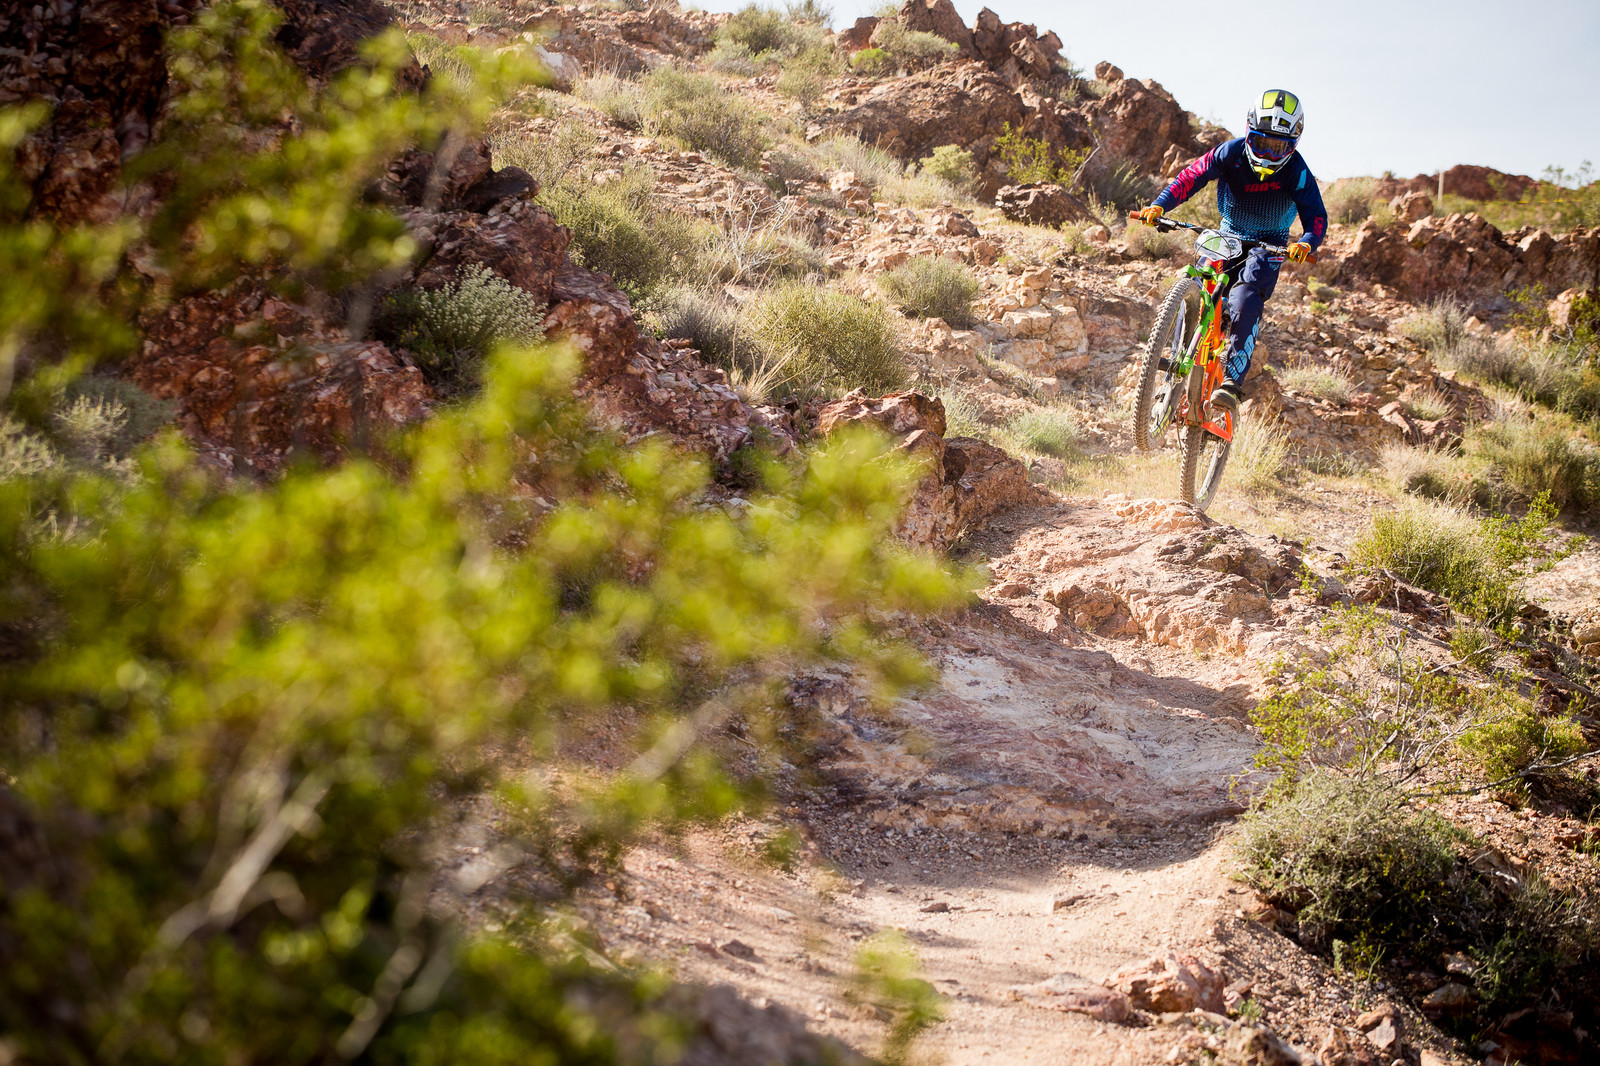 2017 Reaper Madness DH at Bootleg Canyon-19 - 2017 Reaper Madness DH Photos - Mountain Biking Pictures - Vital MTB